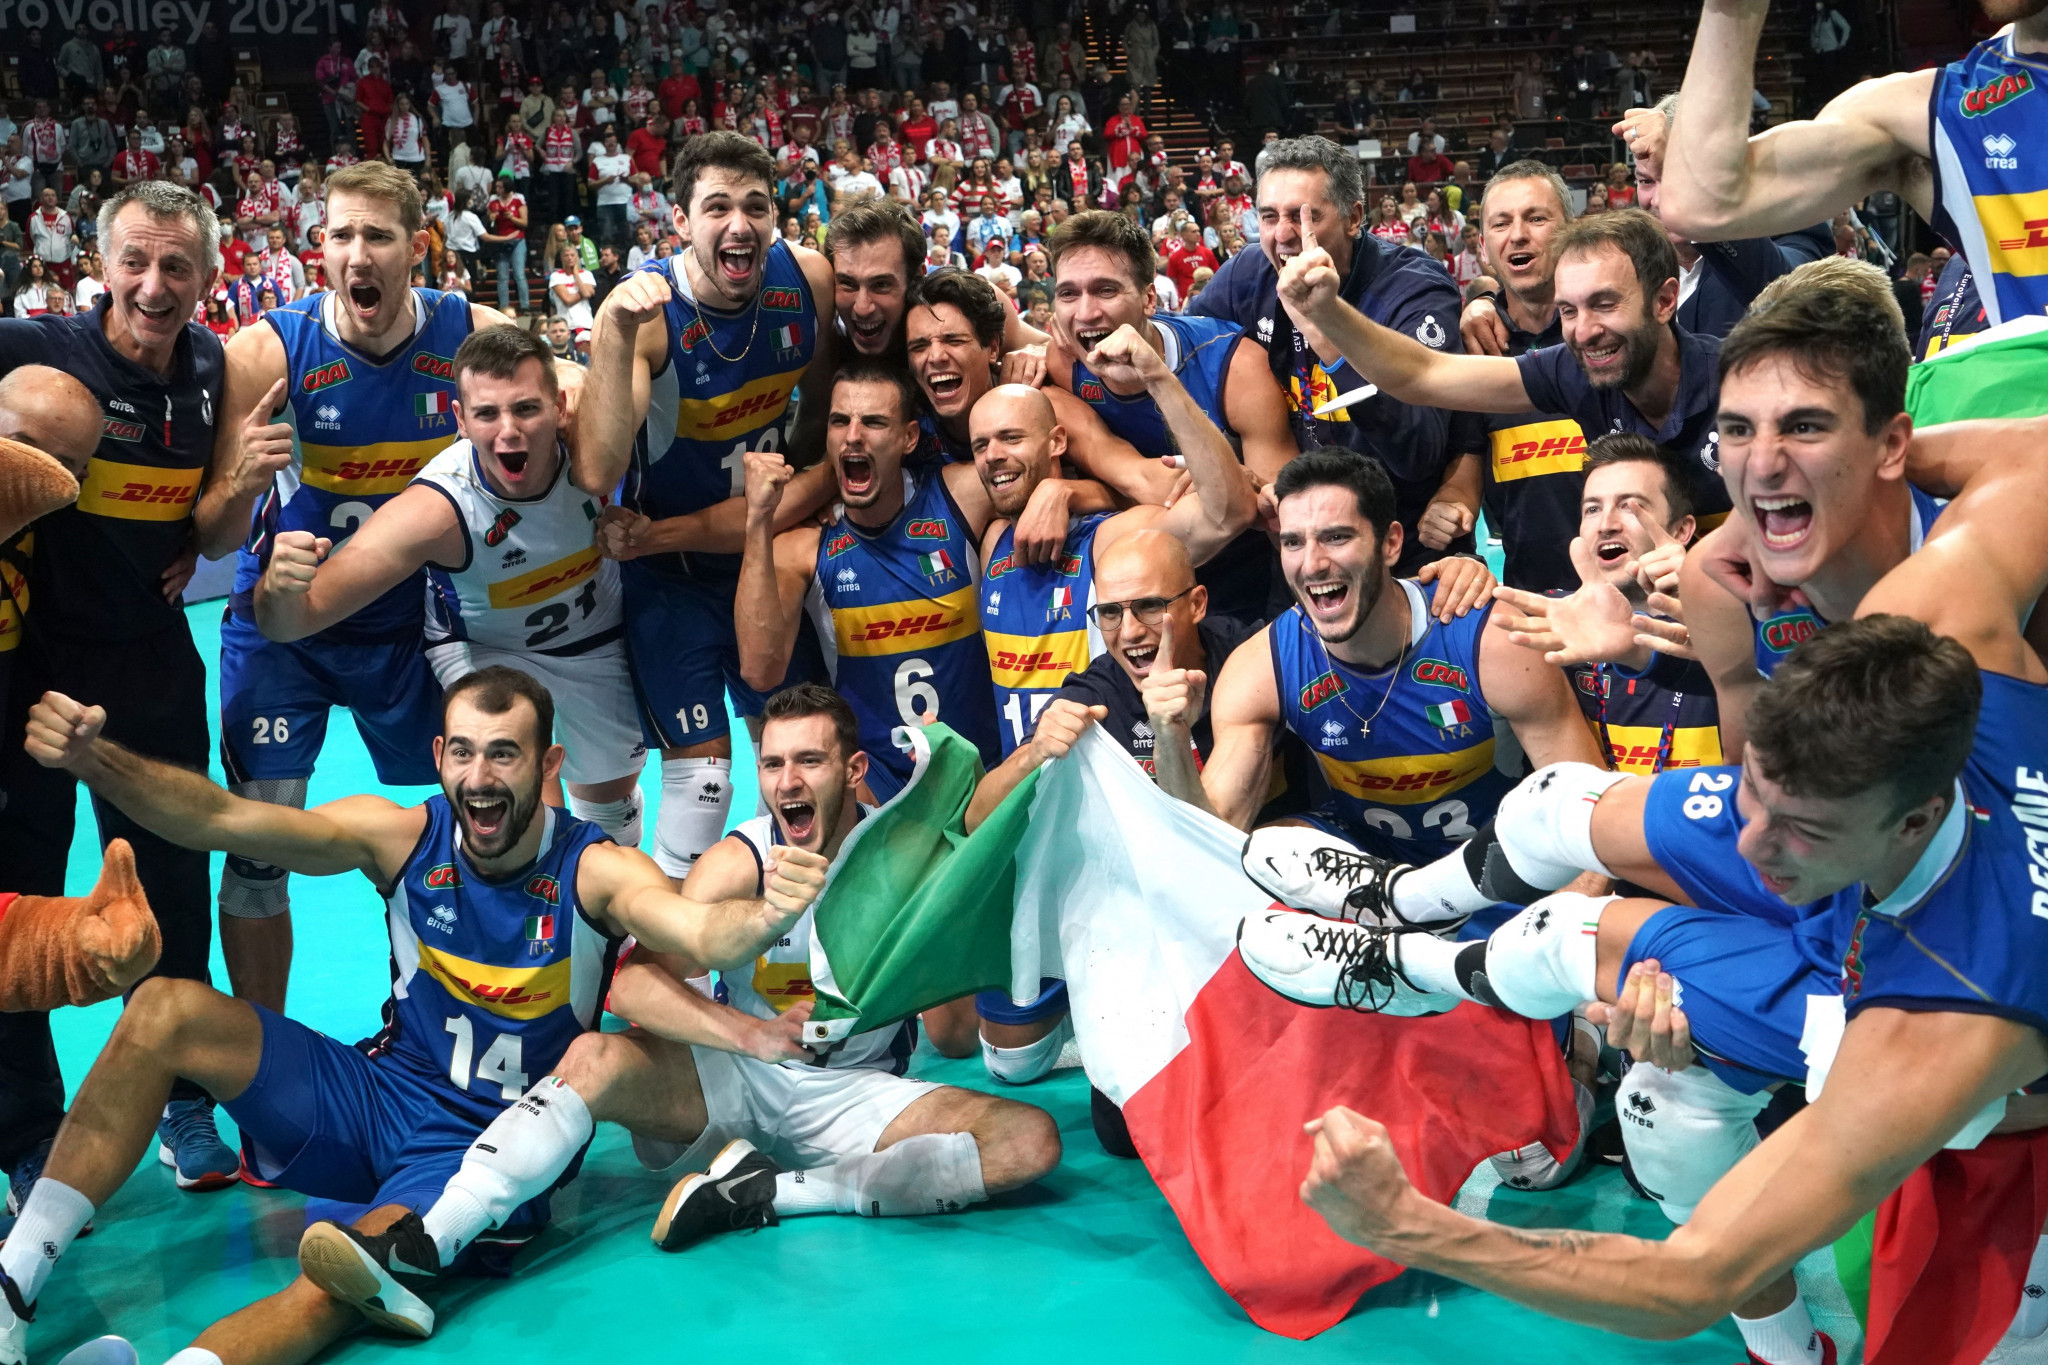 Italy defeat Slovenia in five-set thriller to win Men's EuroVolley for seventh time